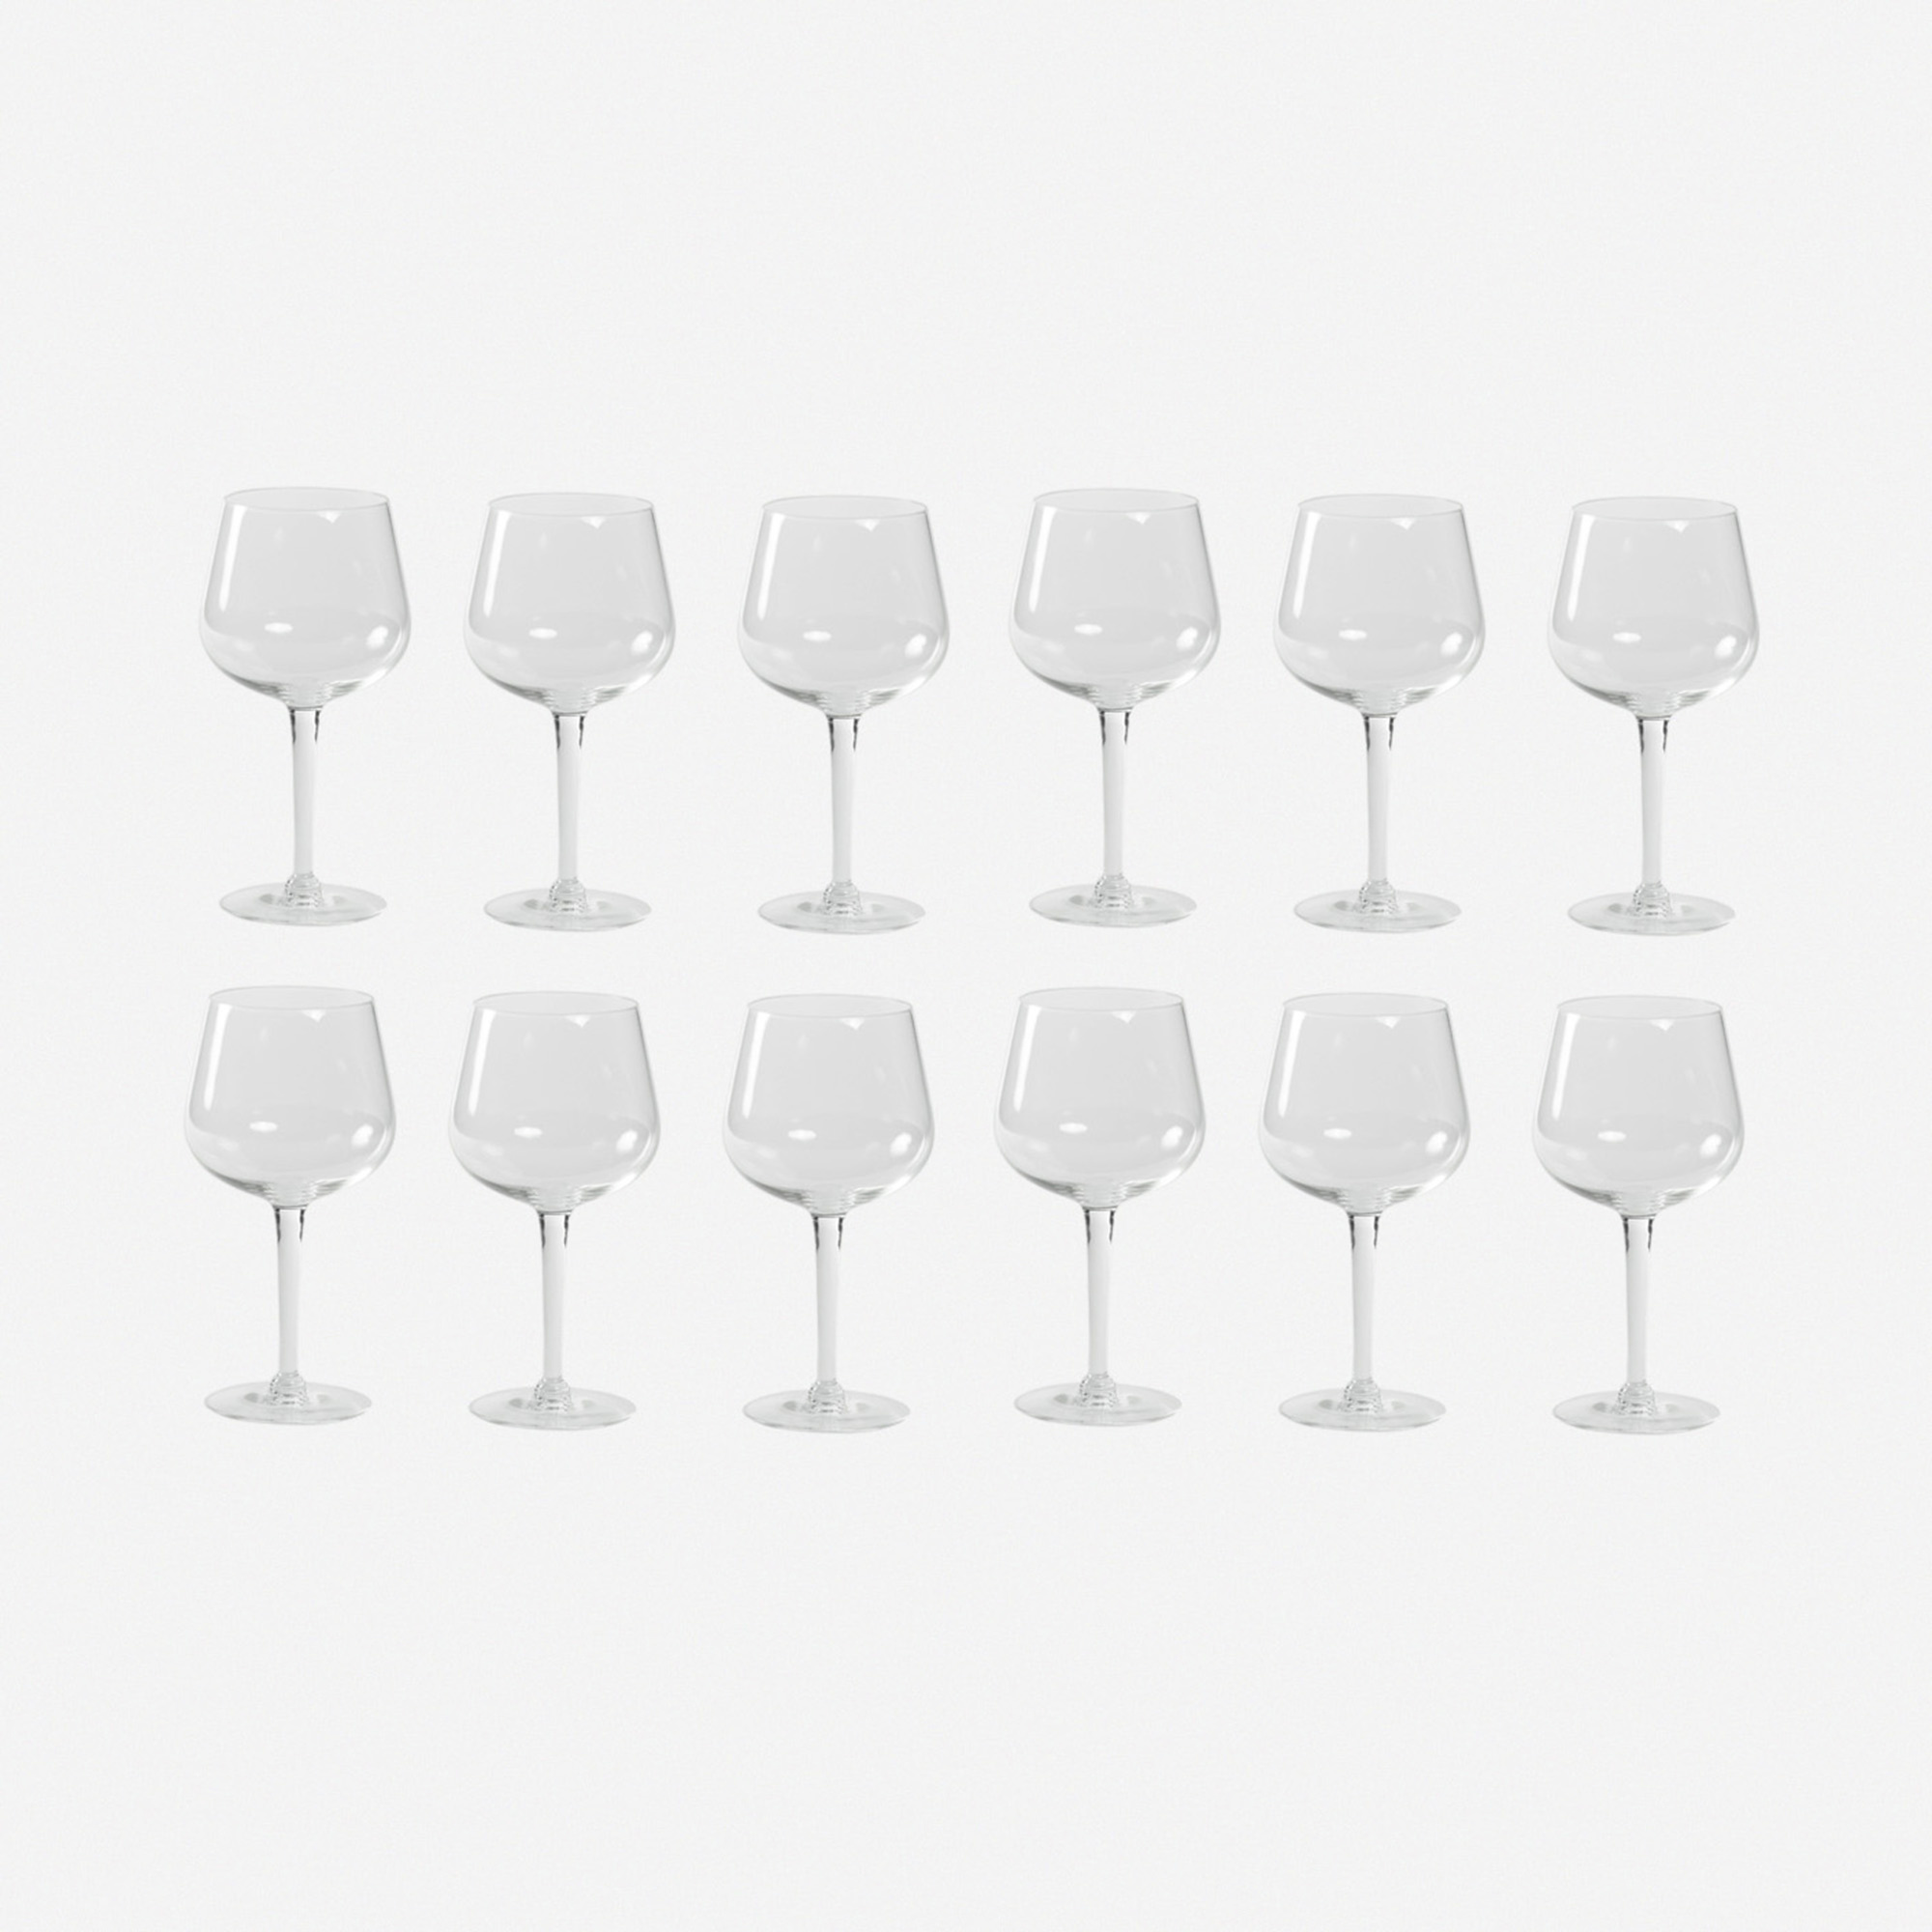 816: Garth and Ada Louise Huxtable / White Wine glasses from The Four Seasons, set of twelve (1 of 1)